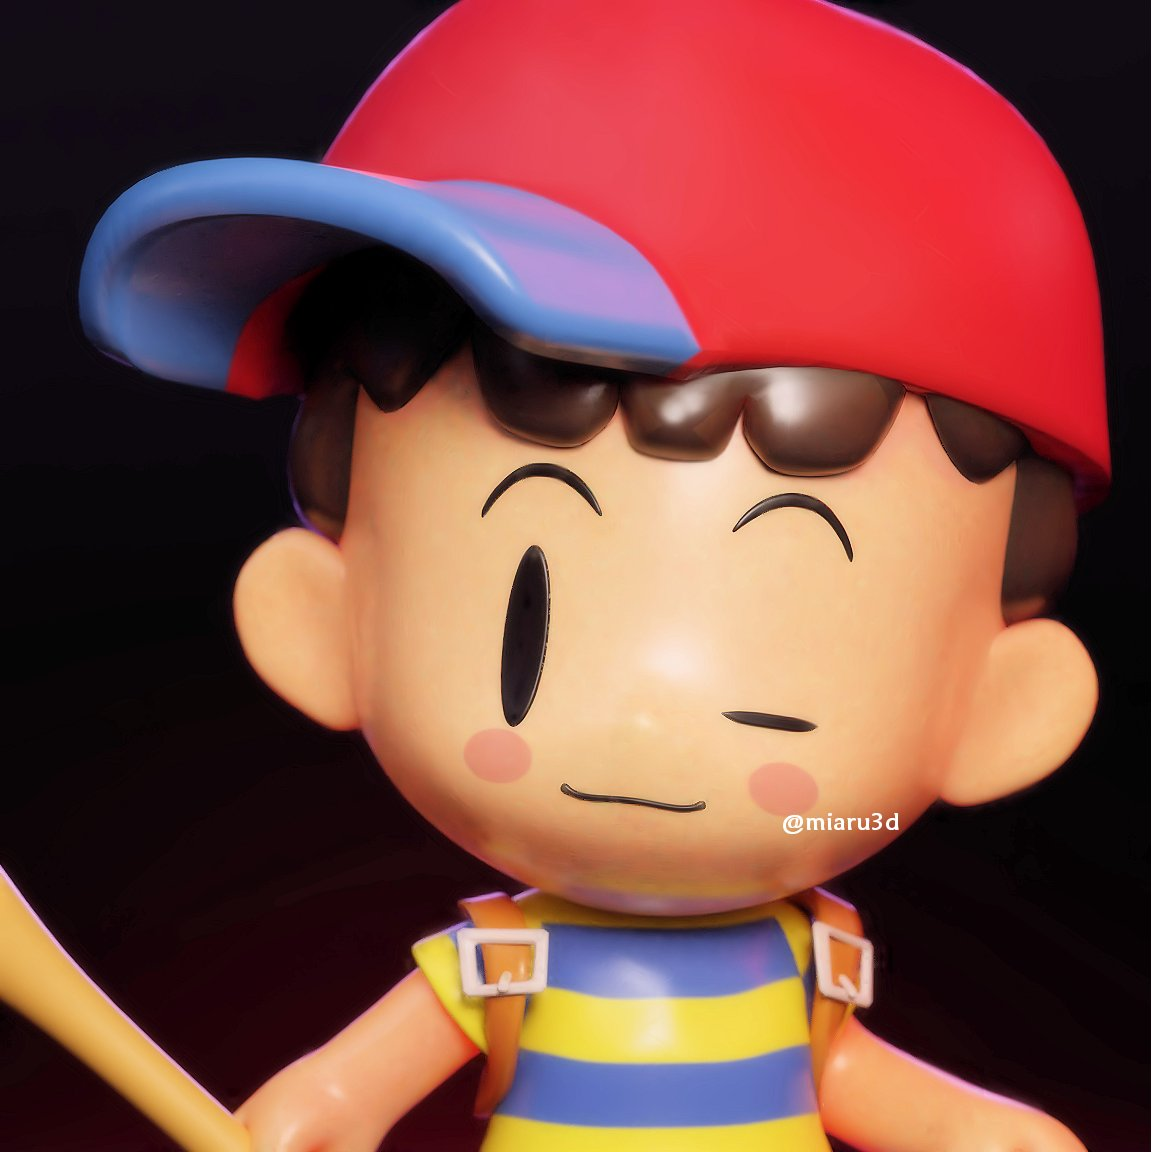 ✨@meowwniz commissioned me to make Ness in the style of The Legend of Zelda: Link's Awakening Loved the artstyle of the game ✨  #blender #b3d #earthbound #LegendOfZelda #3dart